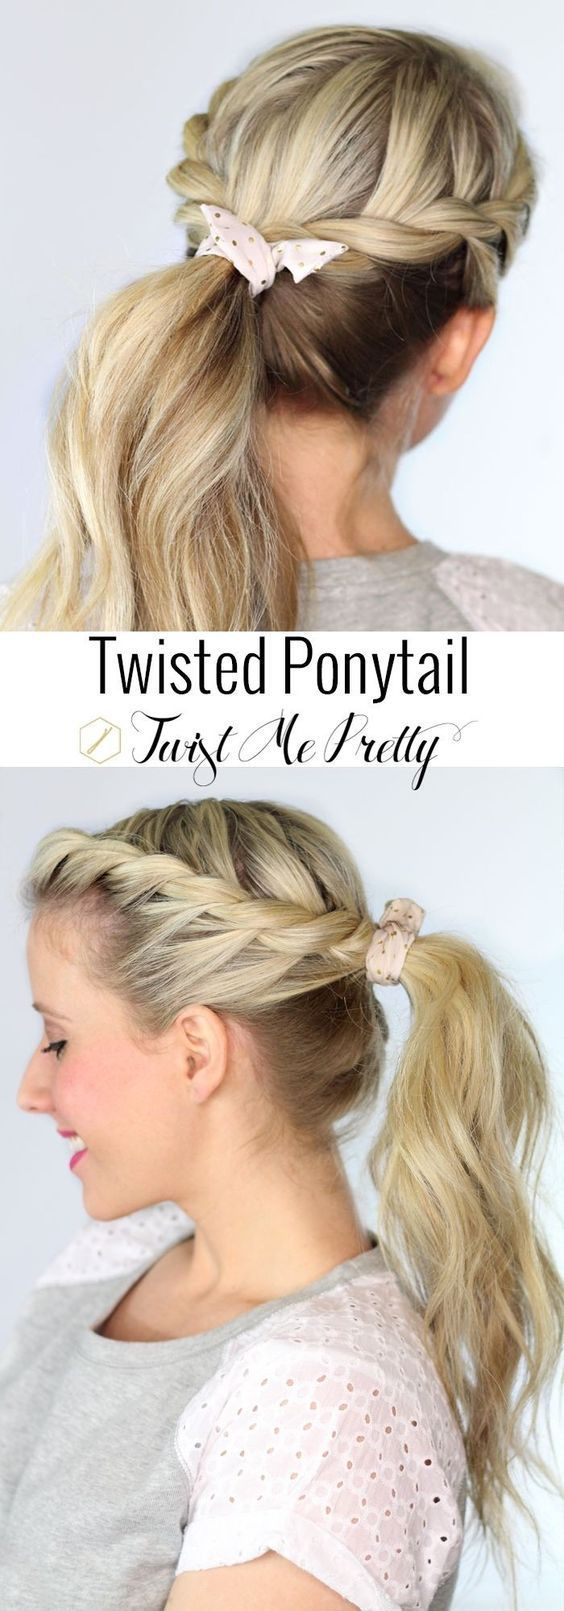 best 25+ cute hairstyles for kids ideas on pinterest | toddler